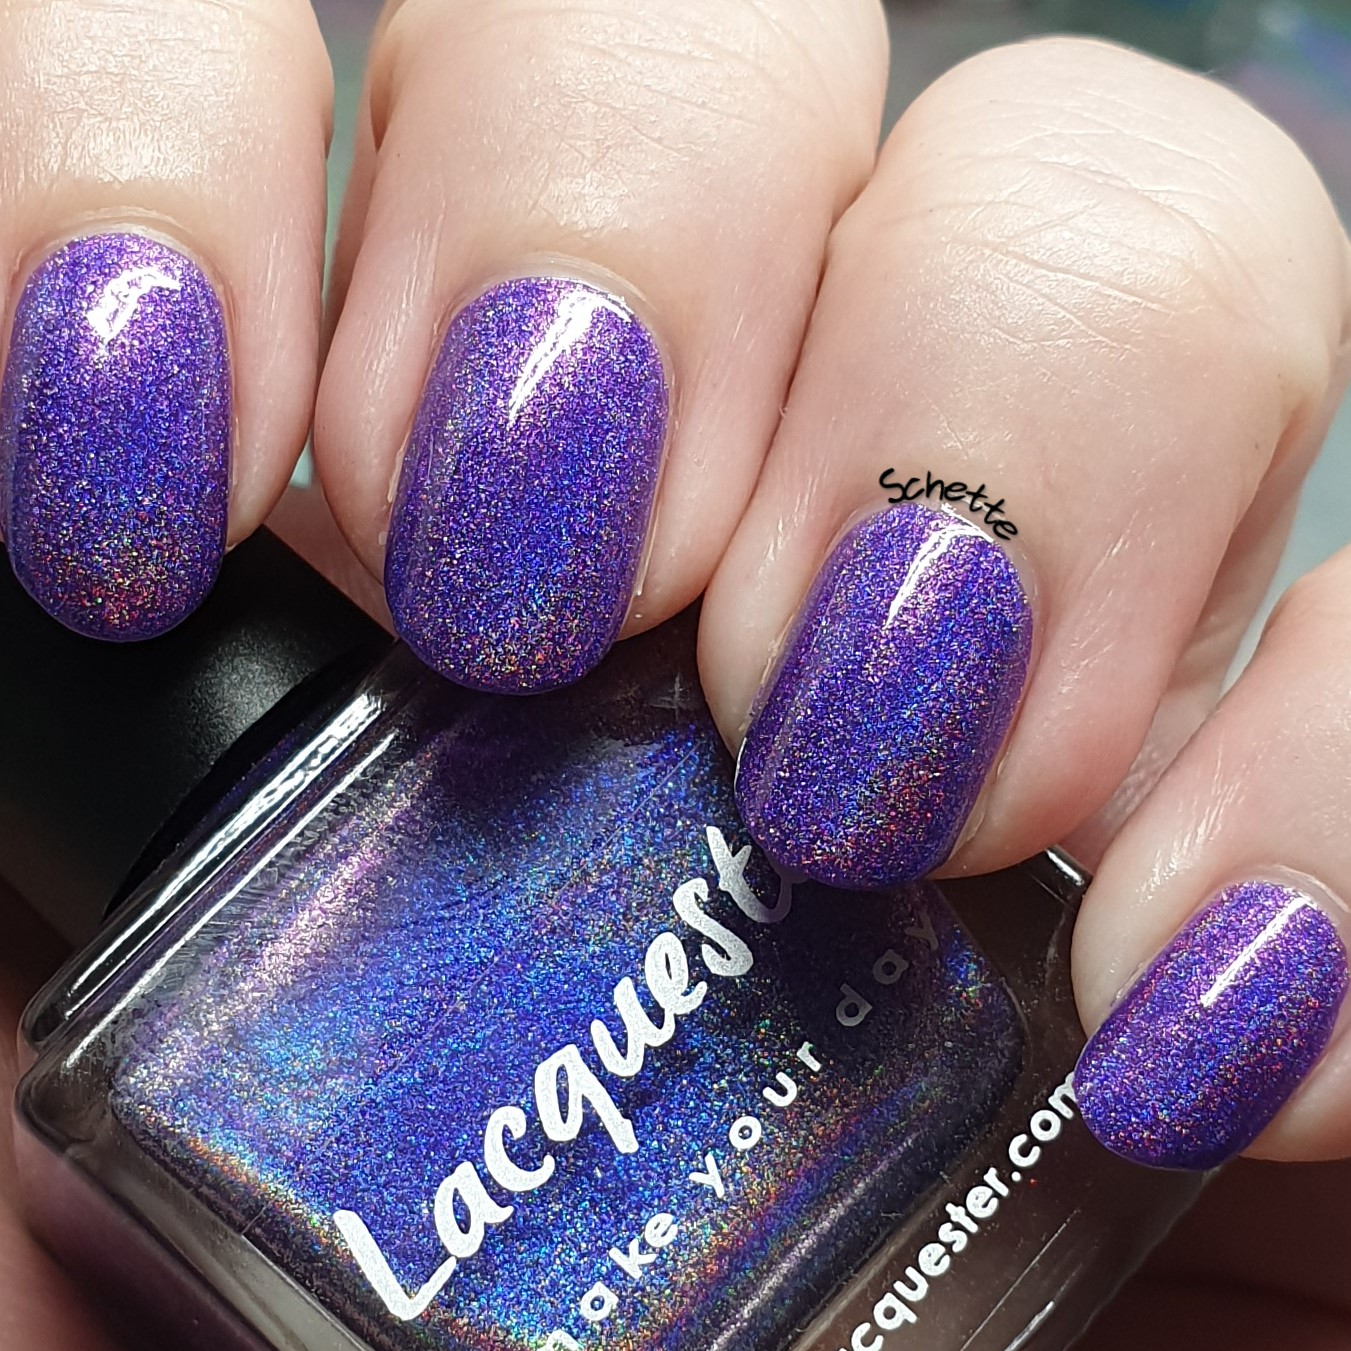 Lacquester - Color of Kings, Favored by Queens